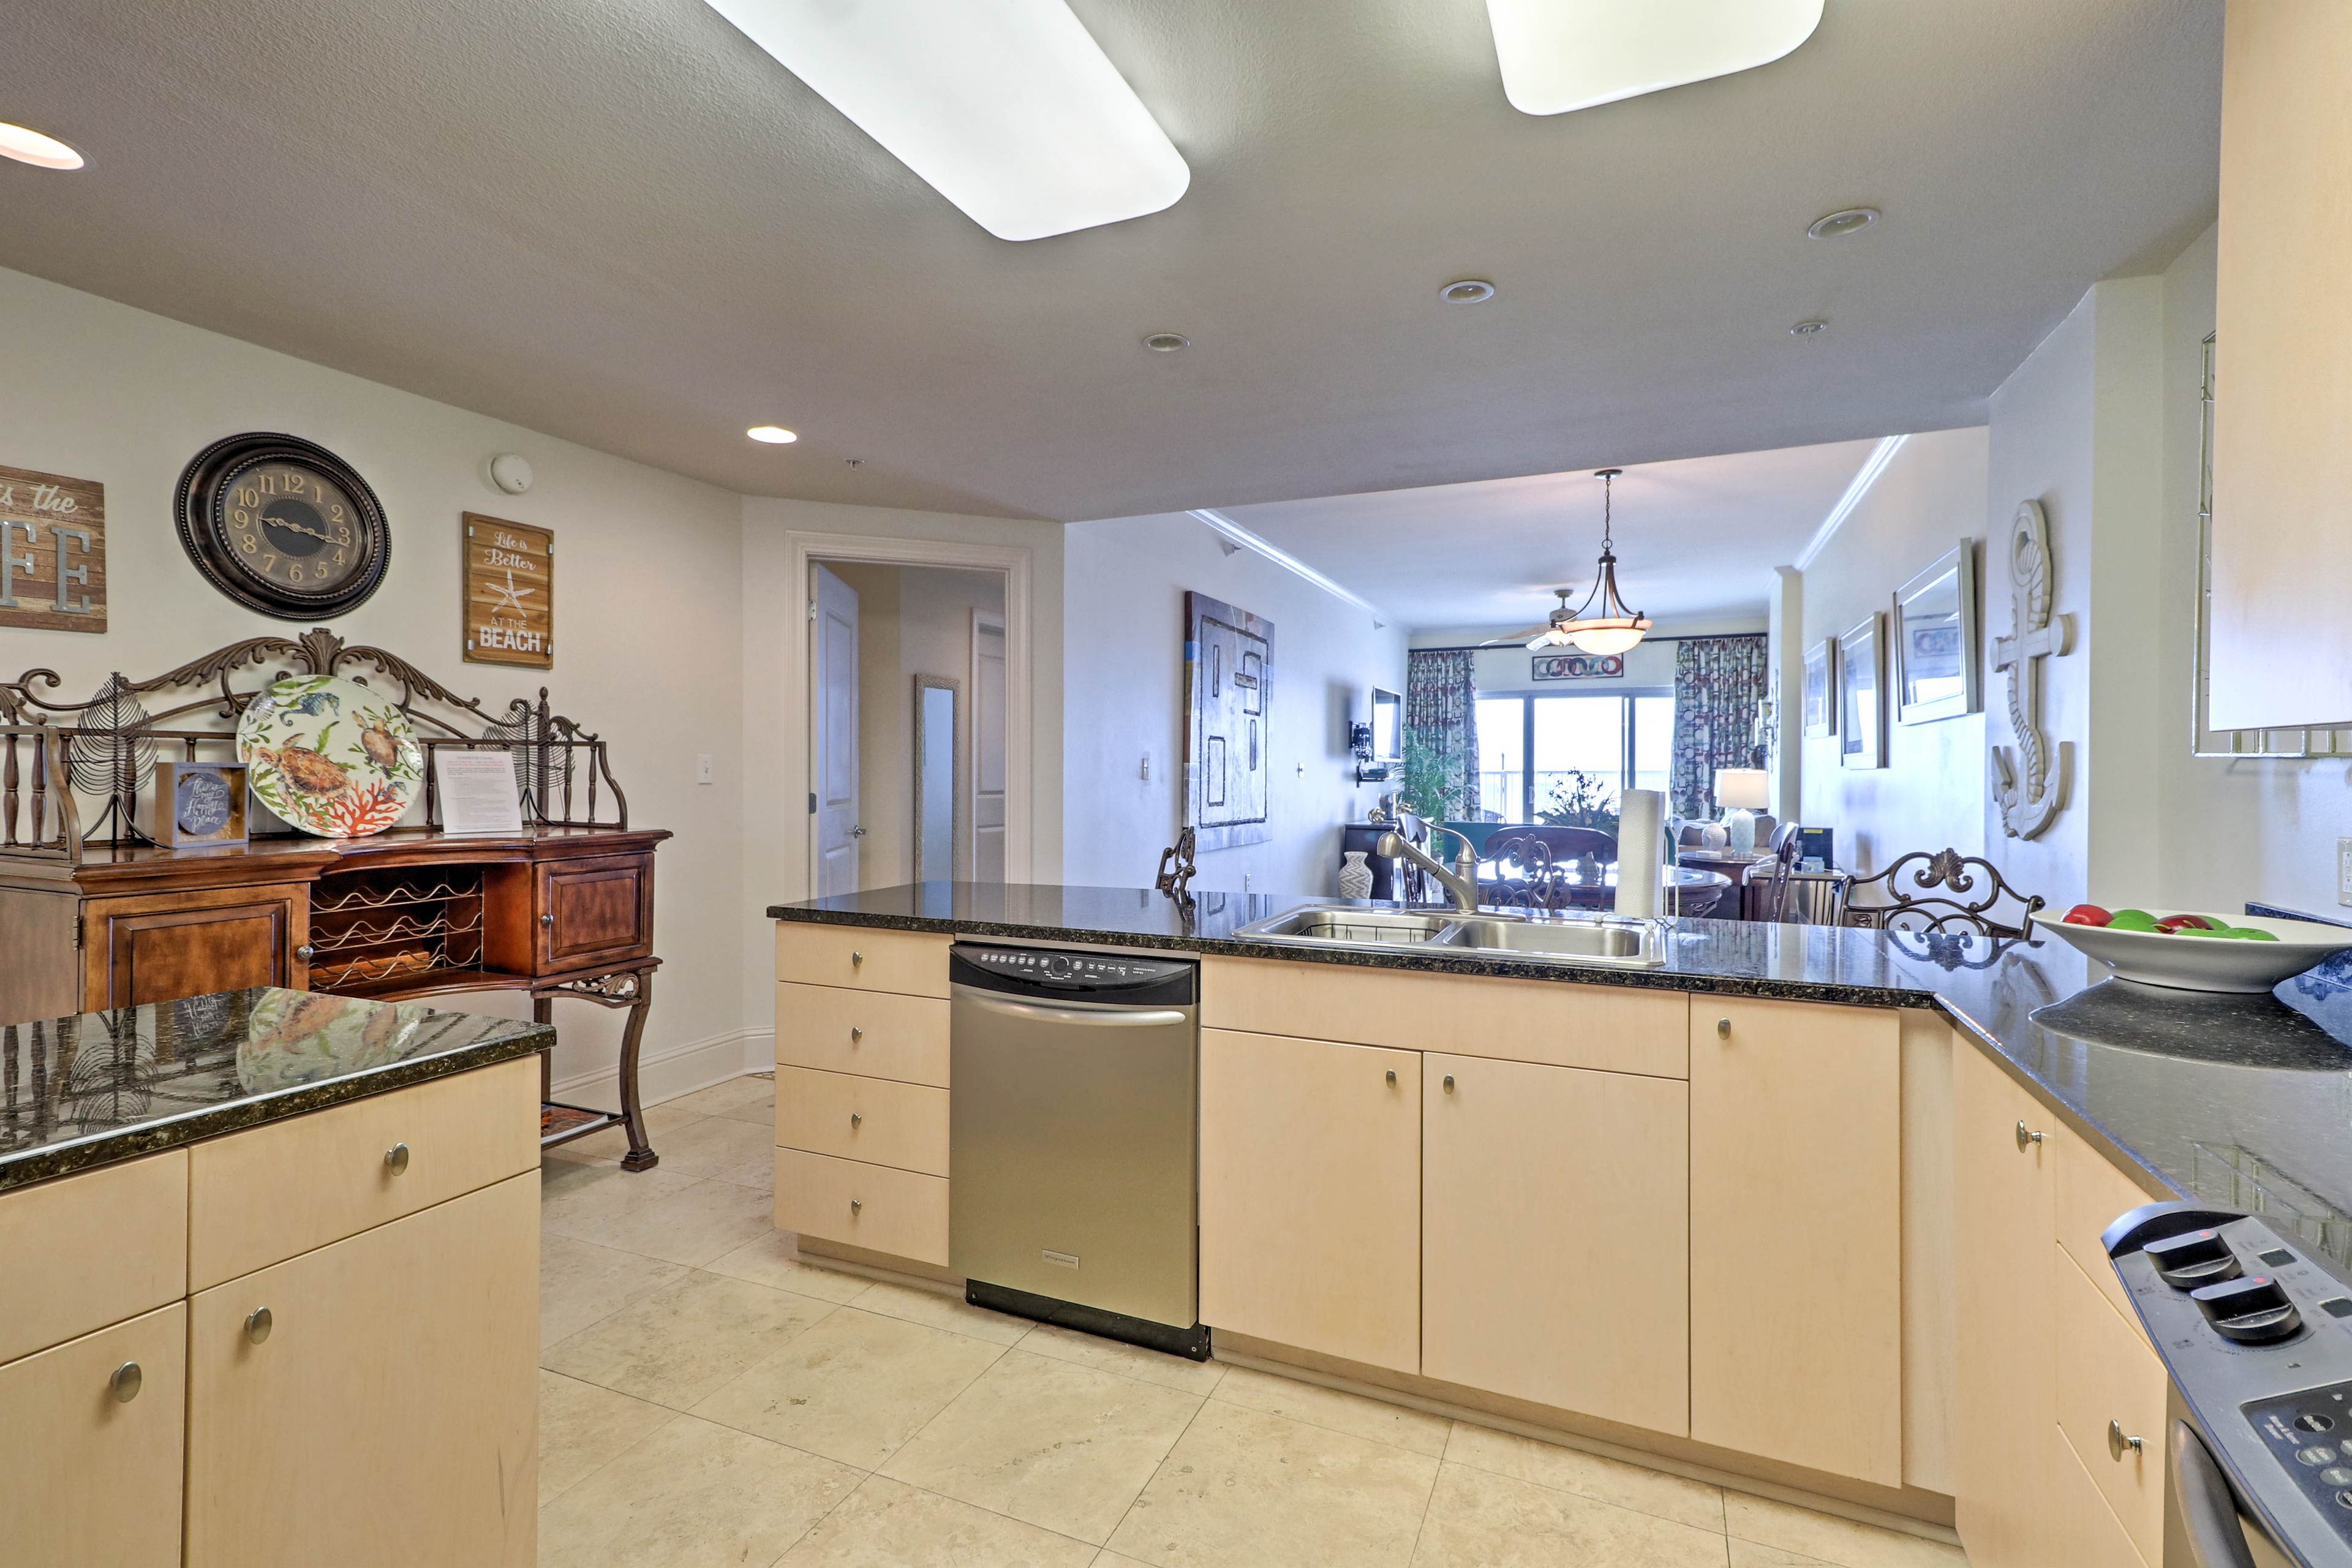 Stainless steel appliances & granite countertops create an enjoyable experience.